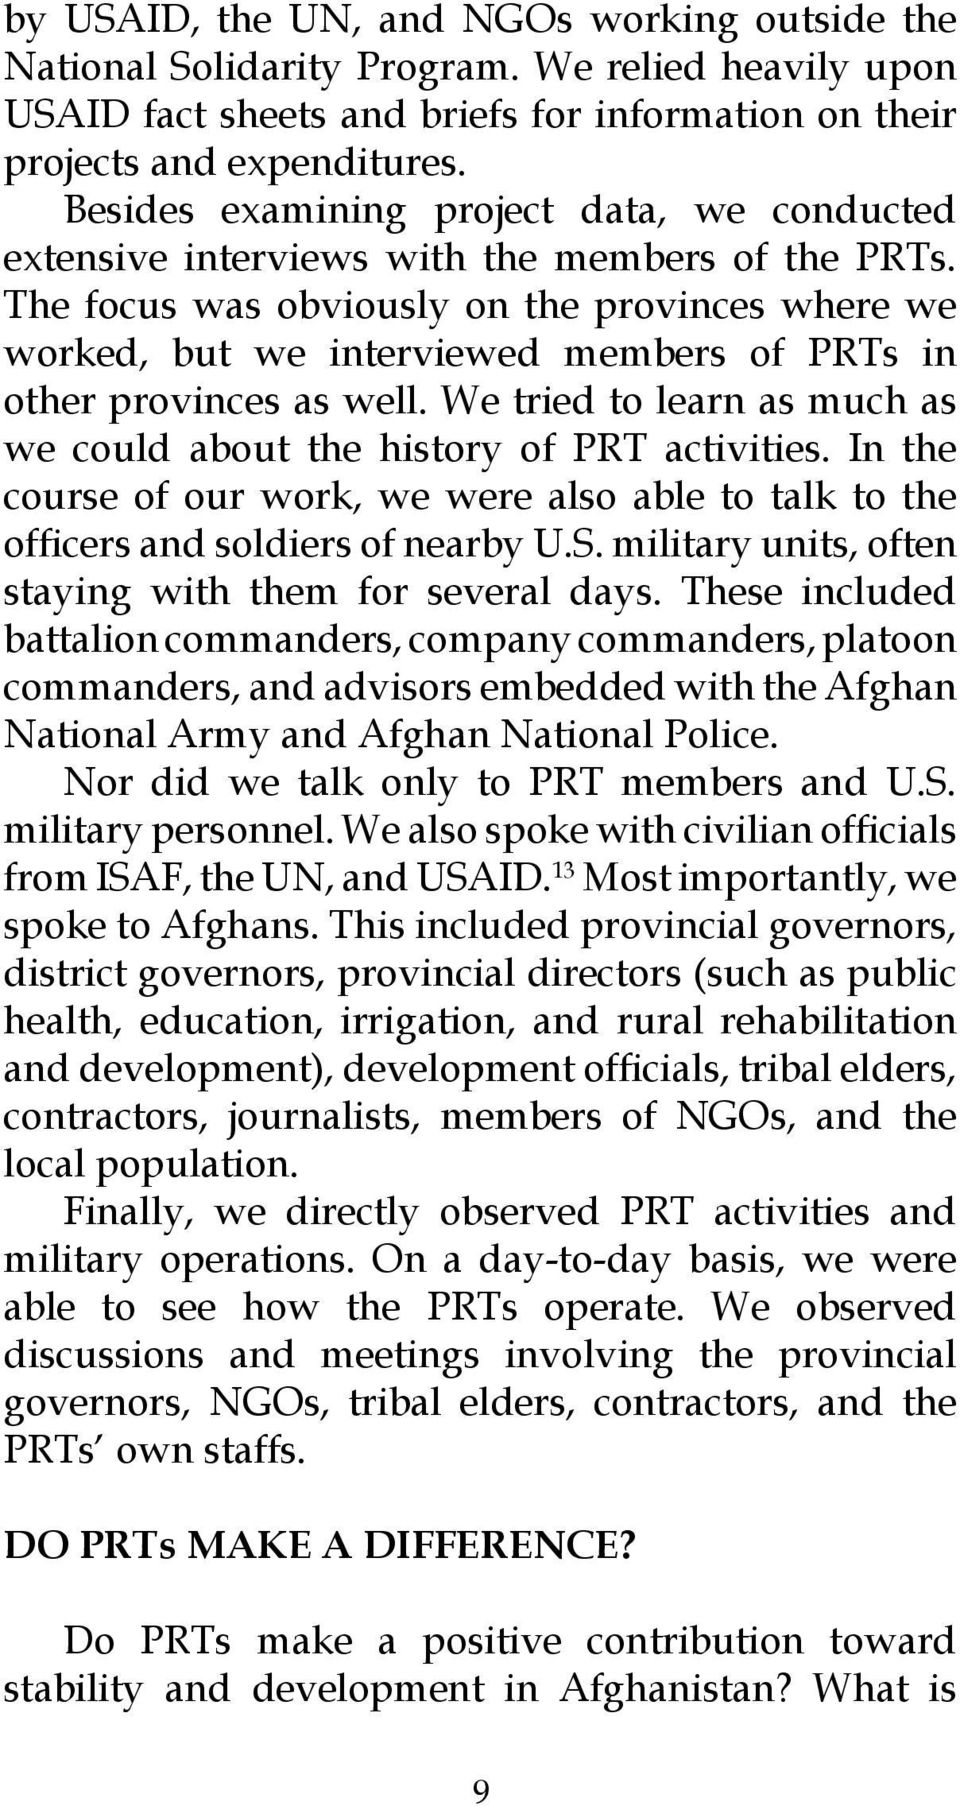 The focus was obviously on the provinces where we worked, but we interviewed members of PRTs in other provinces as well. We tried to learn as much as we could about the history of PRT activities.